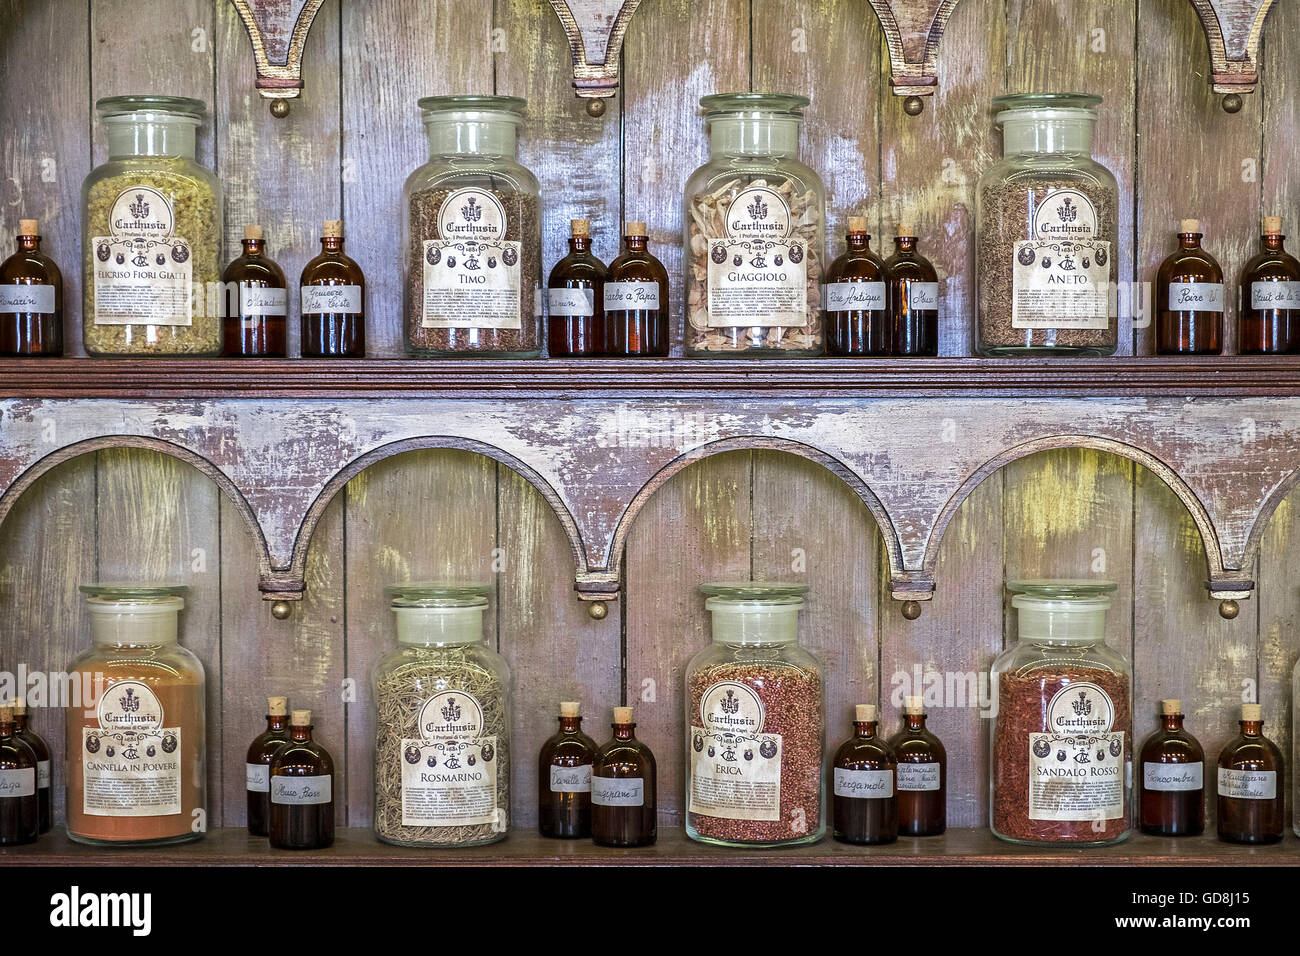 Antique bottles and jars of perfume ingredients at the Carthusia perfumery on the island of Capri, Italy - Stock Image